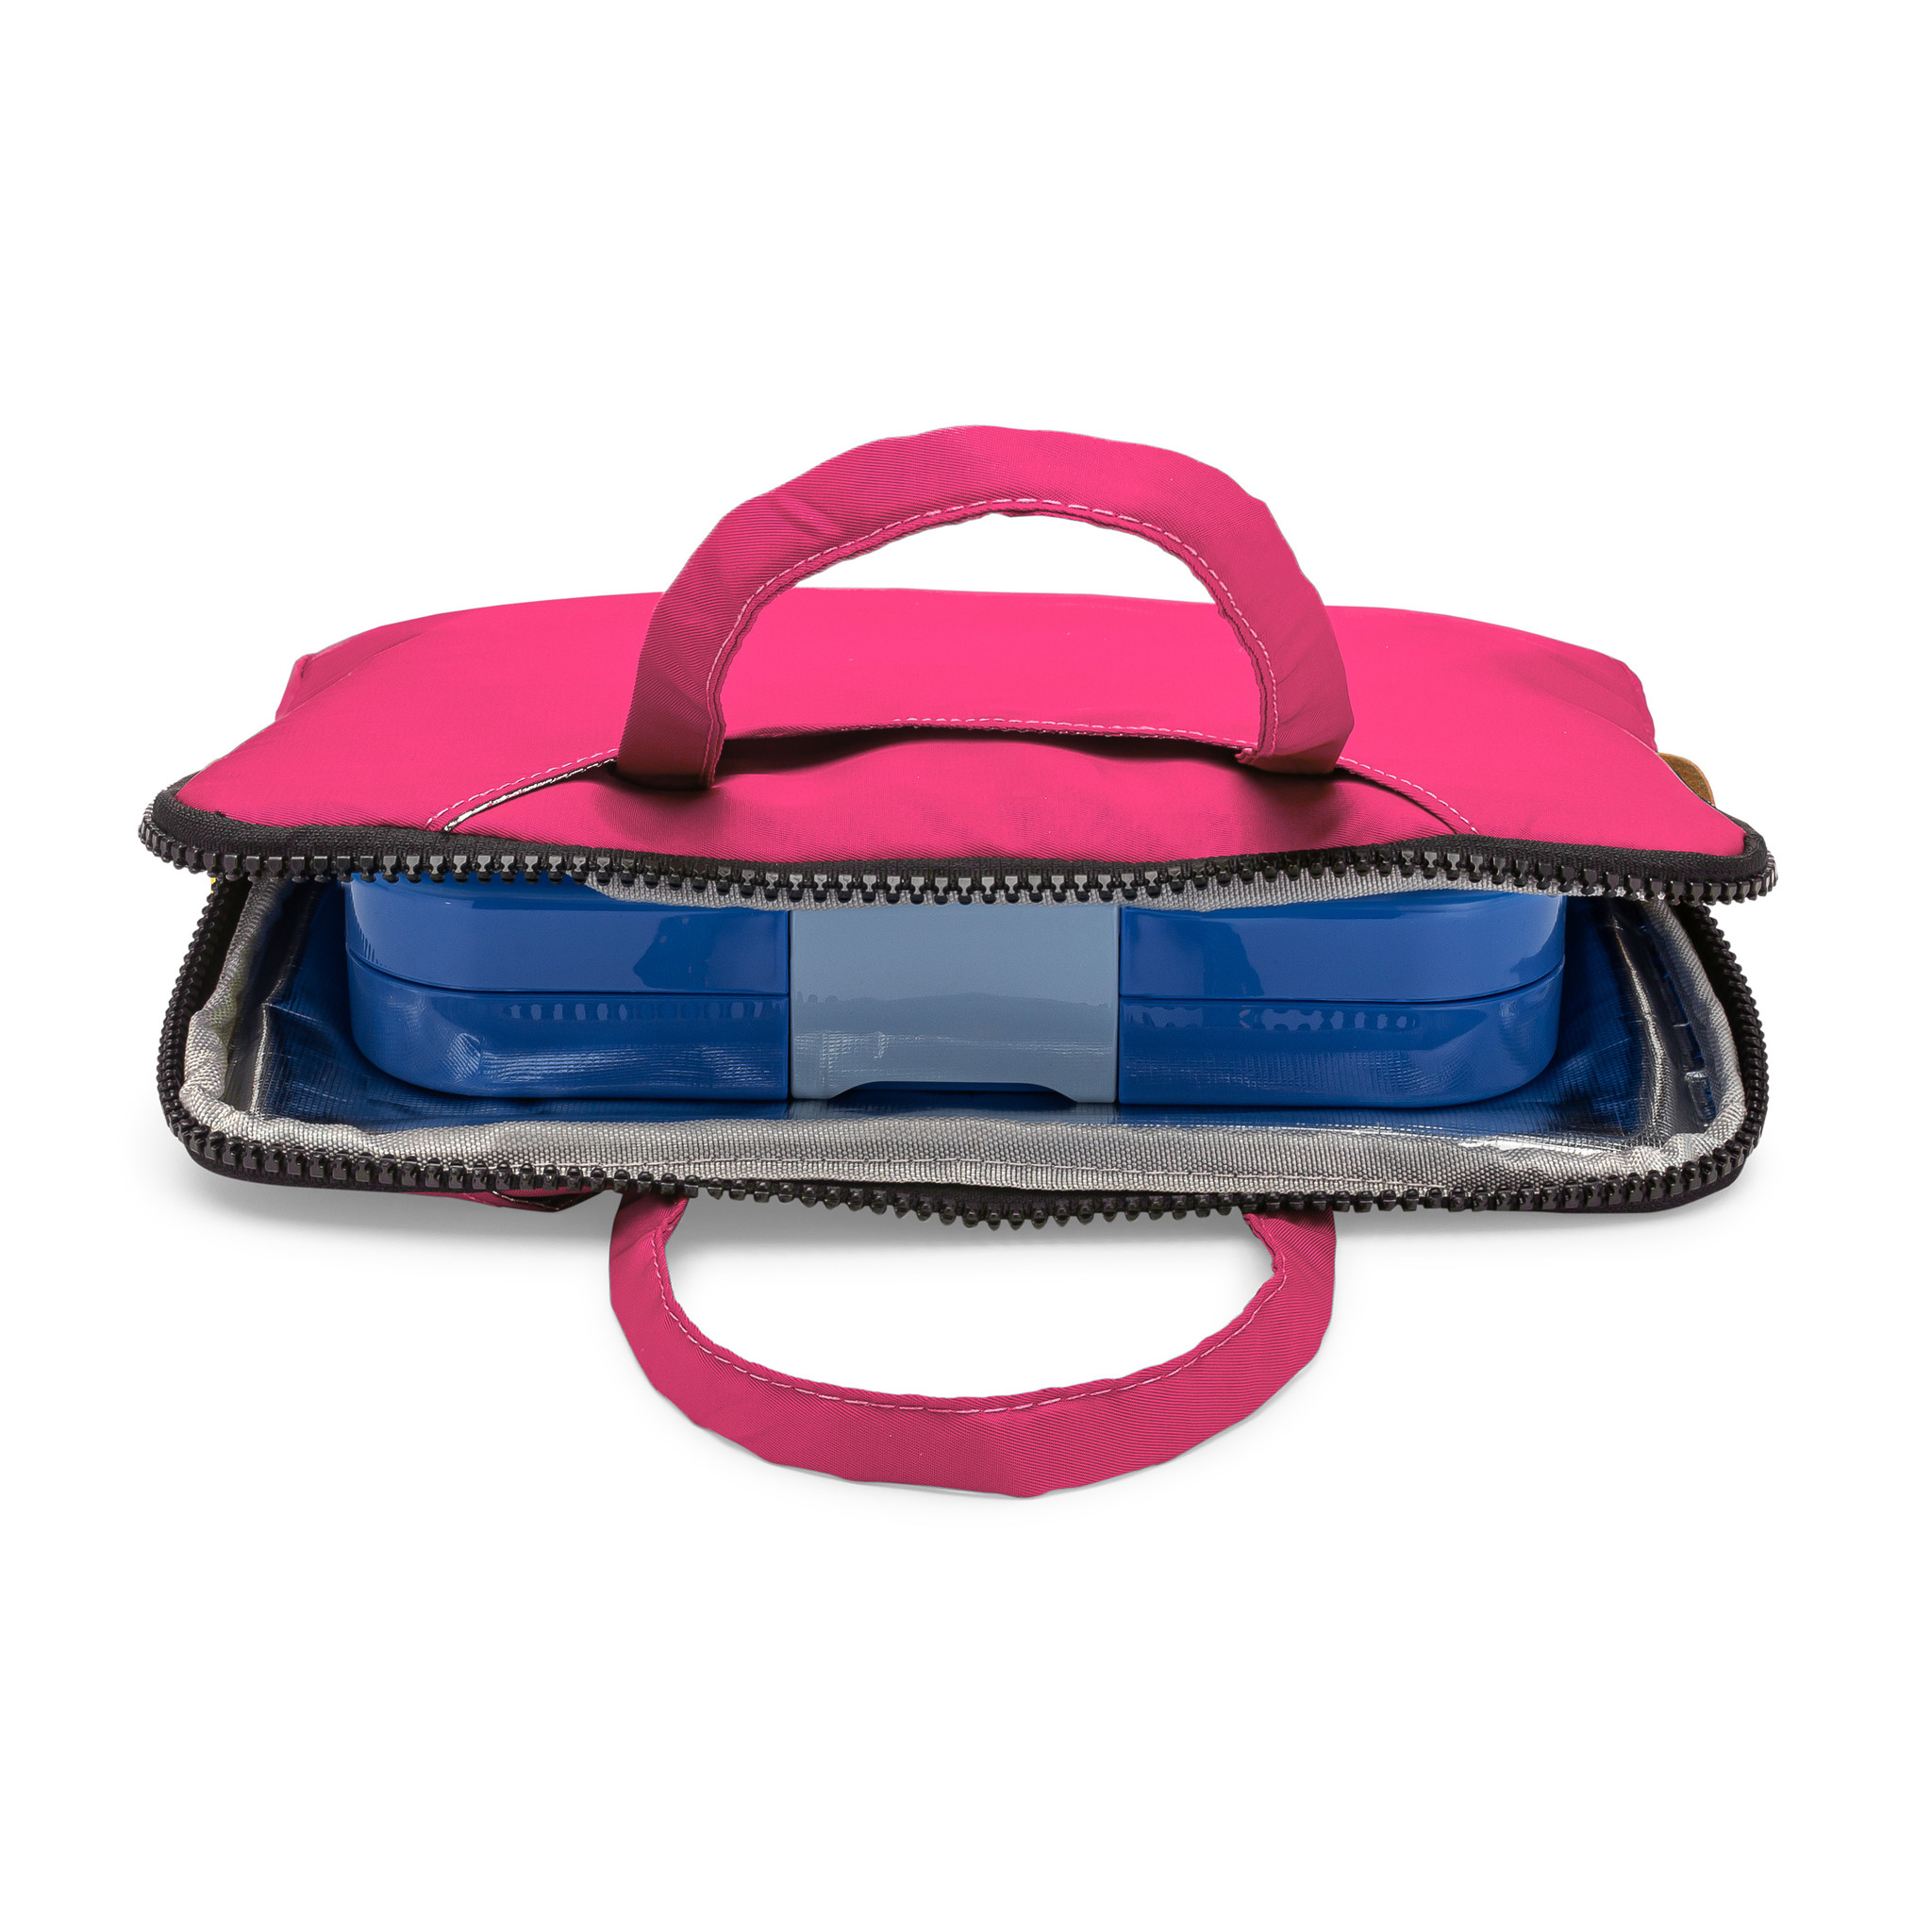 Yumbox Poche with handles Pink-2